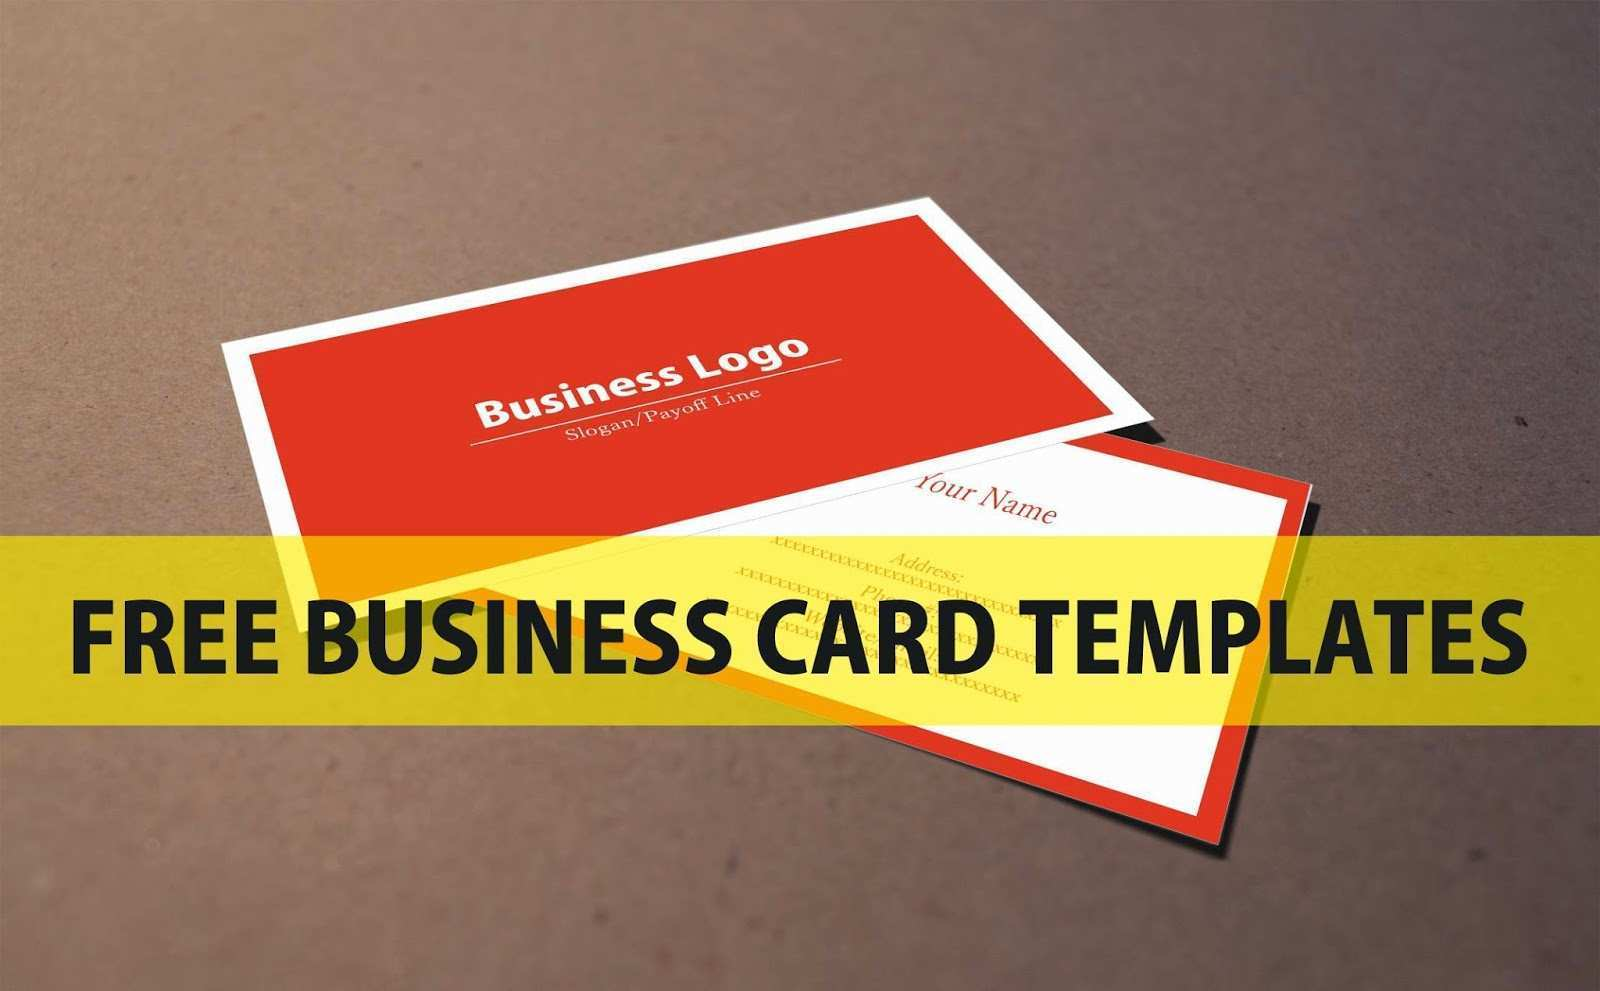 74 Free Printable Business Card Design In Corel Draw Online Photo with Business Card Design In Corel Draw Online